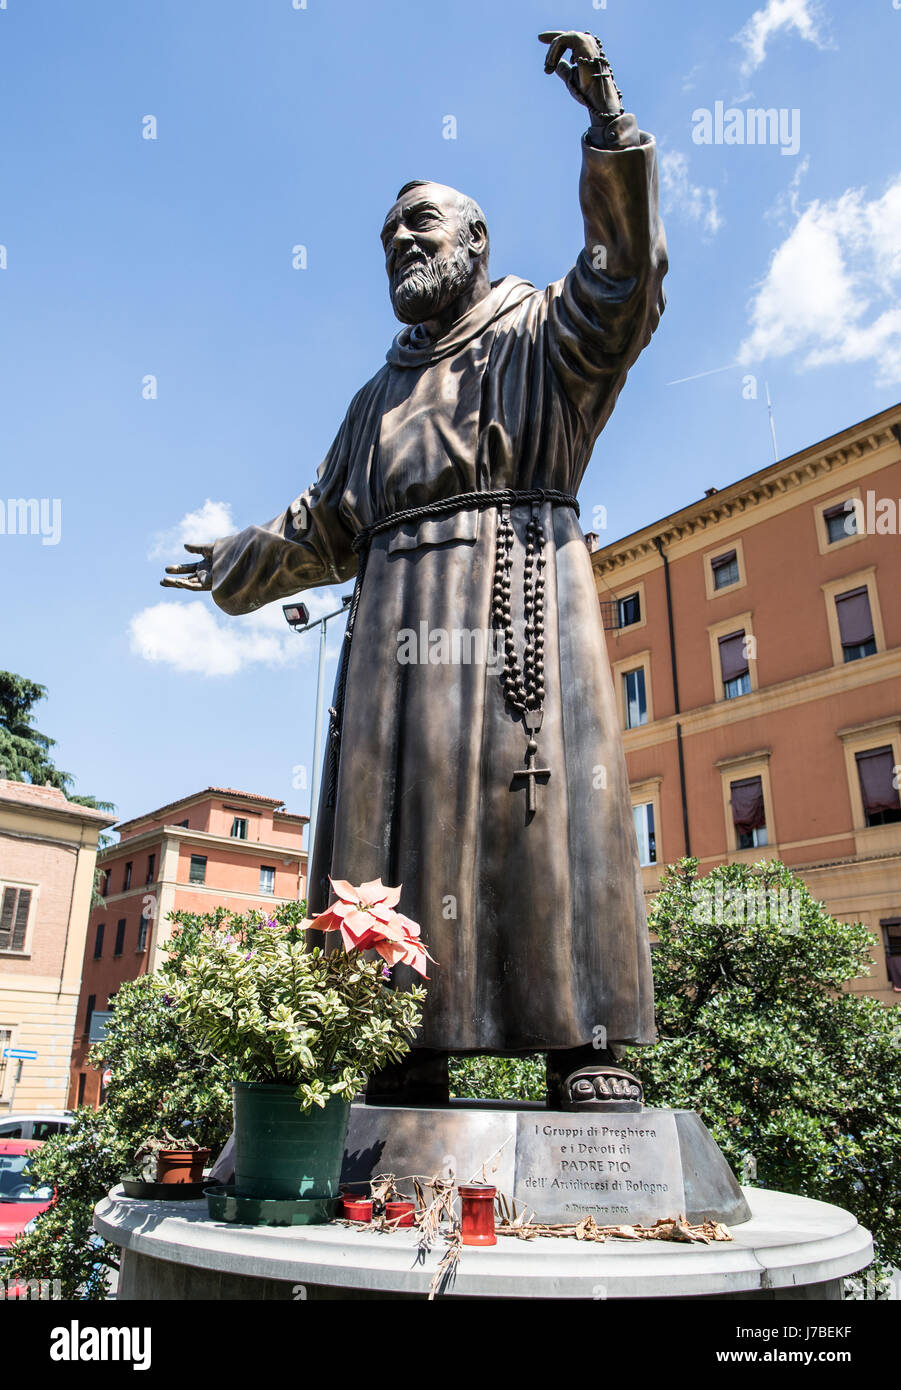 Bronze Statue of Padre Peo Bologna Italy - Stock Image